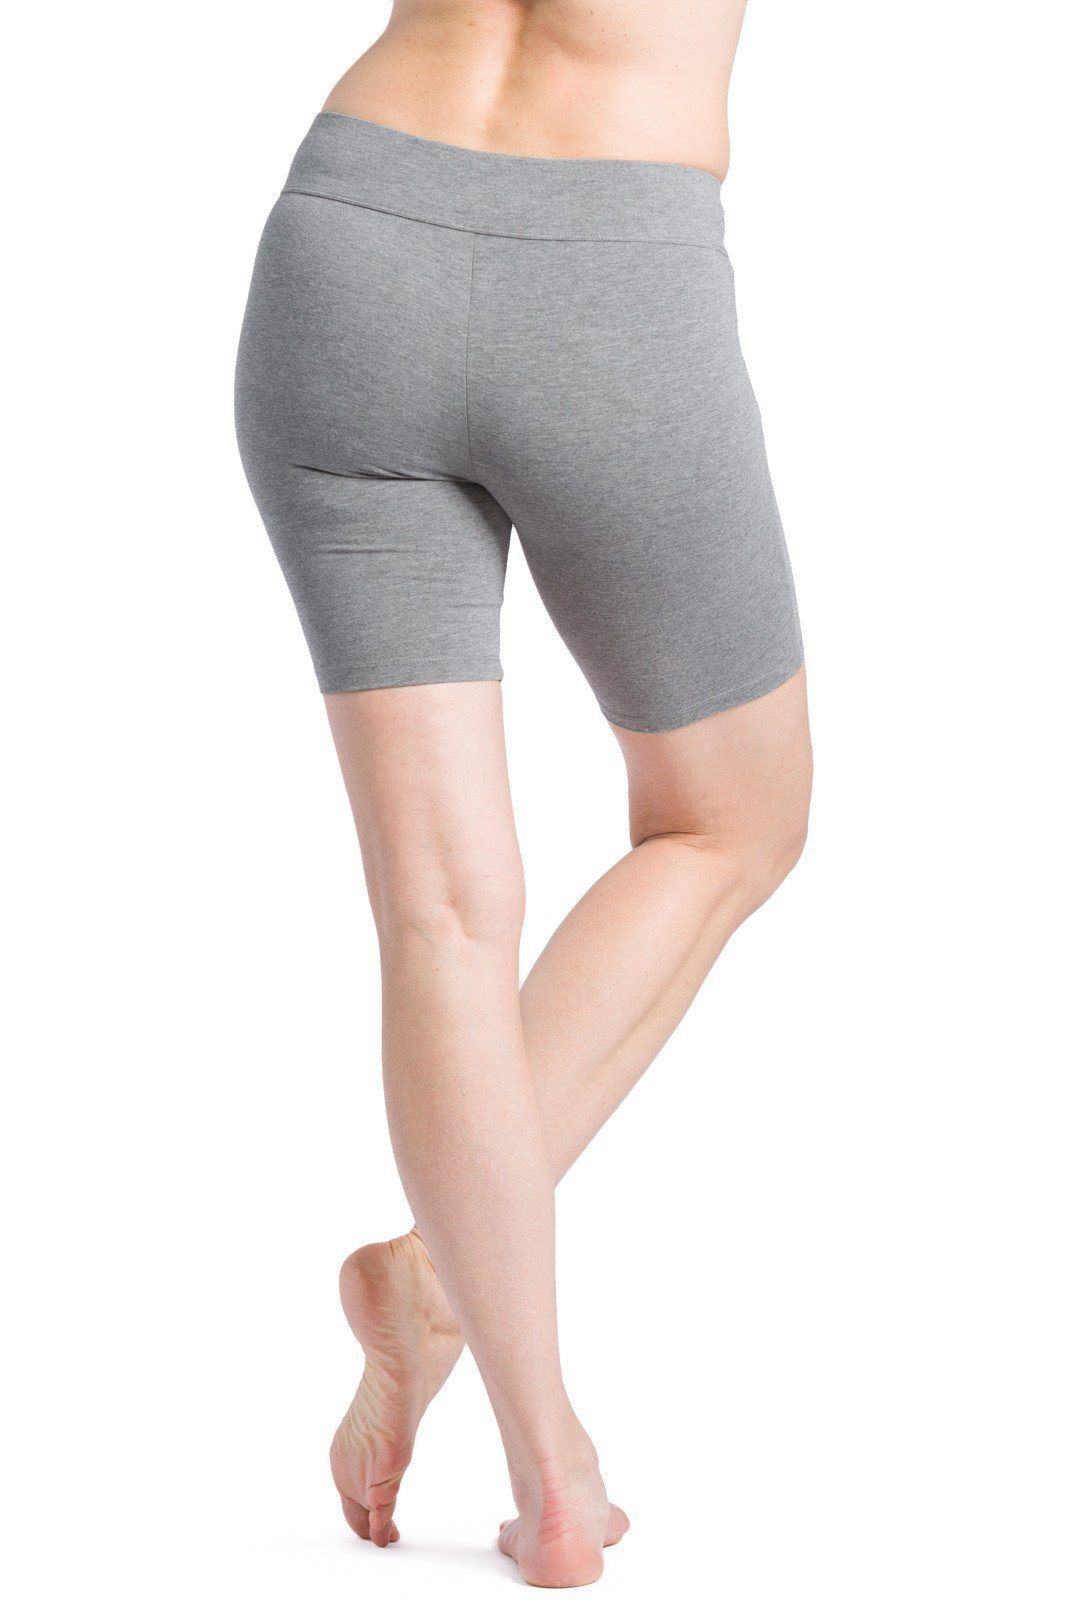 0147cf3853cc9 Women's Leggings | Mid Thigh Yoga Active wear Tights | Fishers Finery